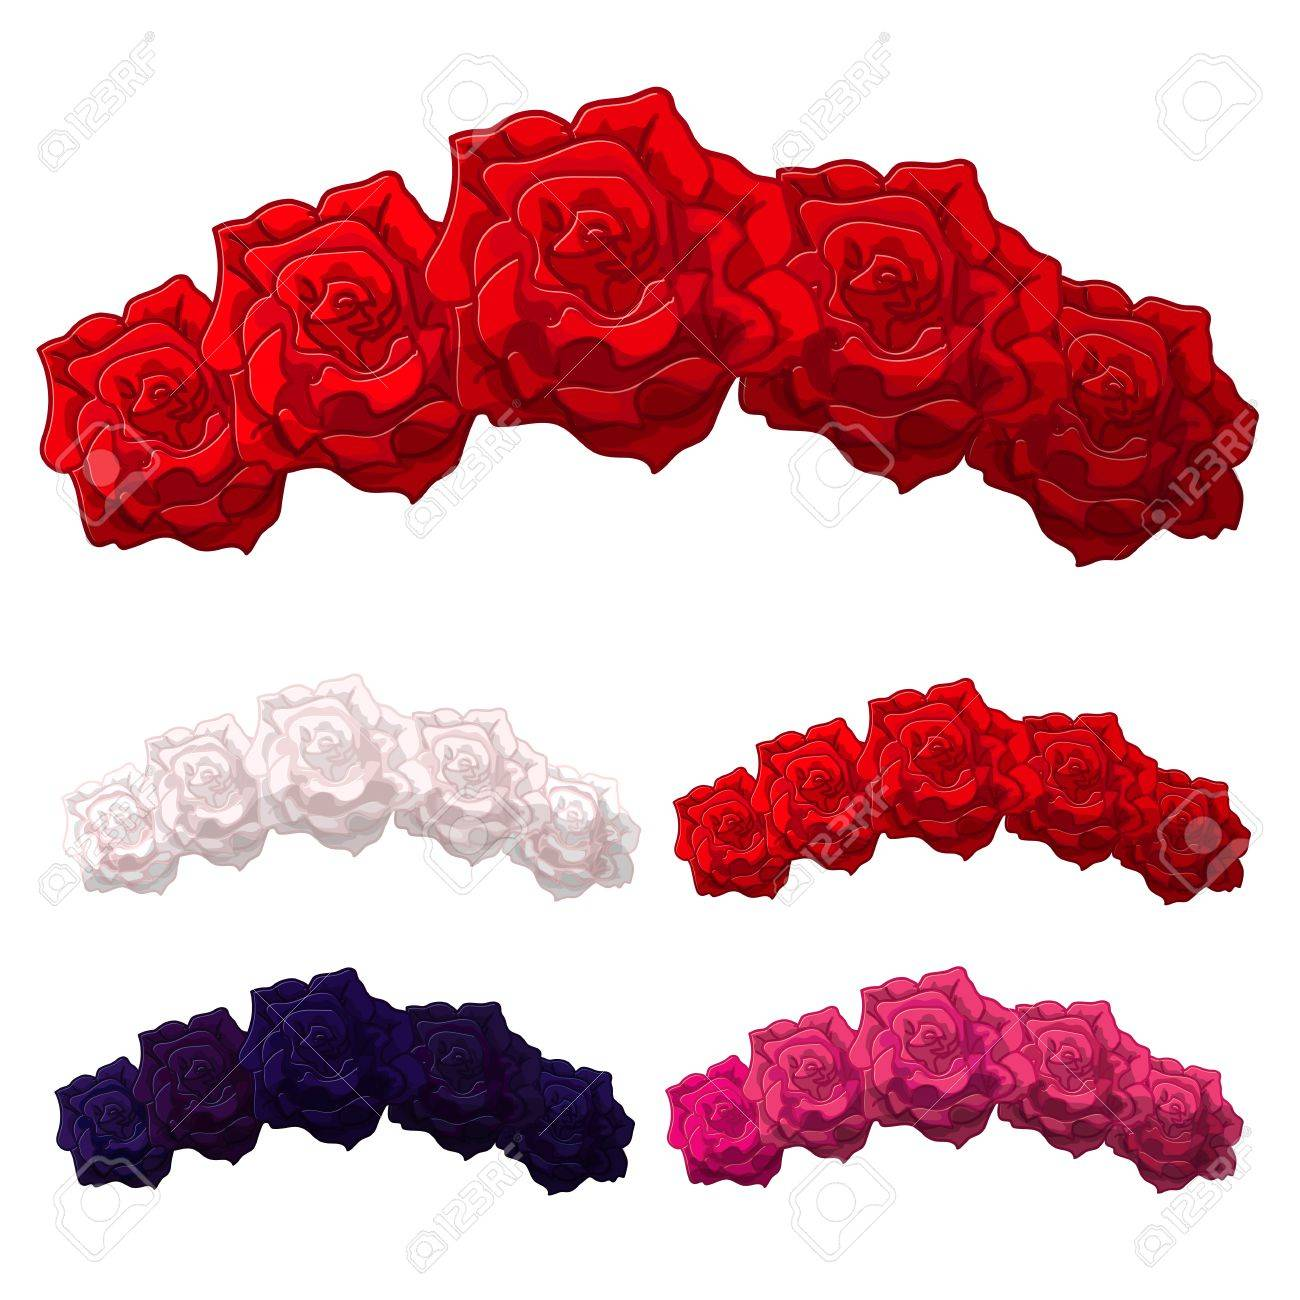 Vector rose flower crown diadem head wreath flower halo vector vector rose flower crown diadem head wreath flower halo decoration headband flower headband clipart isolated on transparent background izmirmasajfo